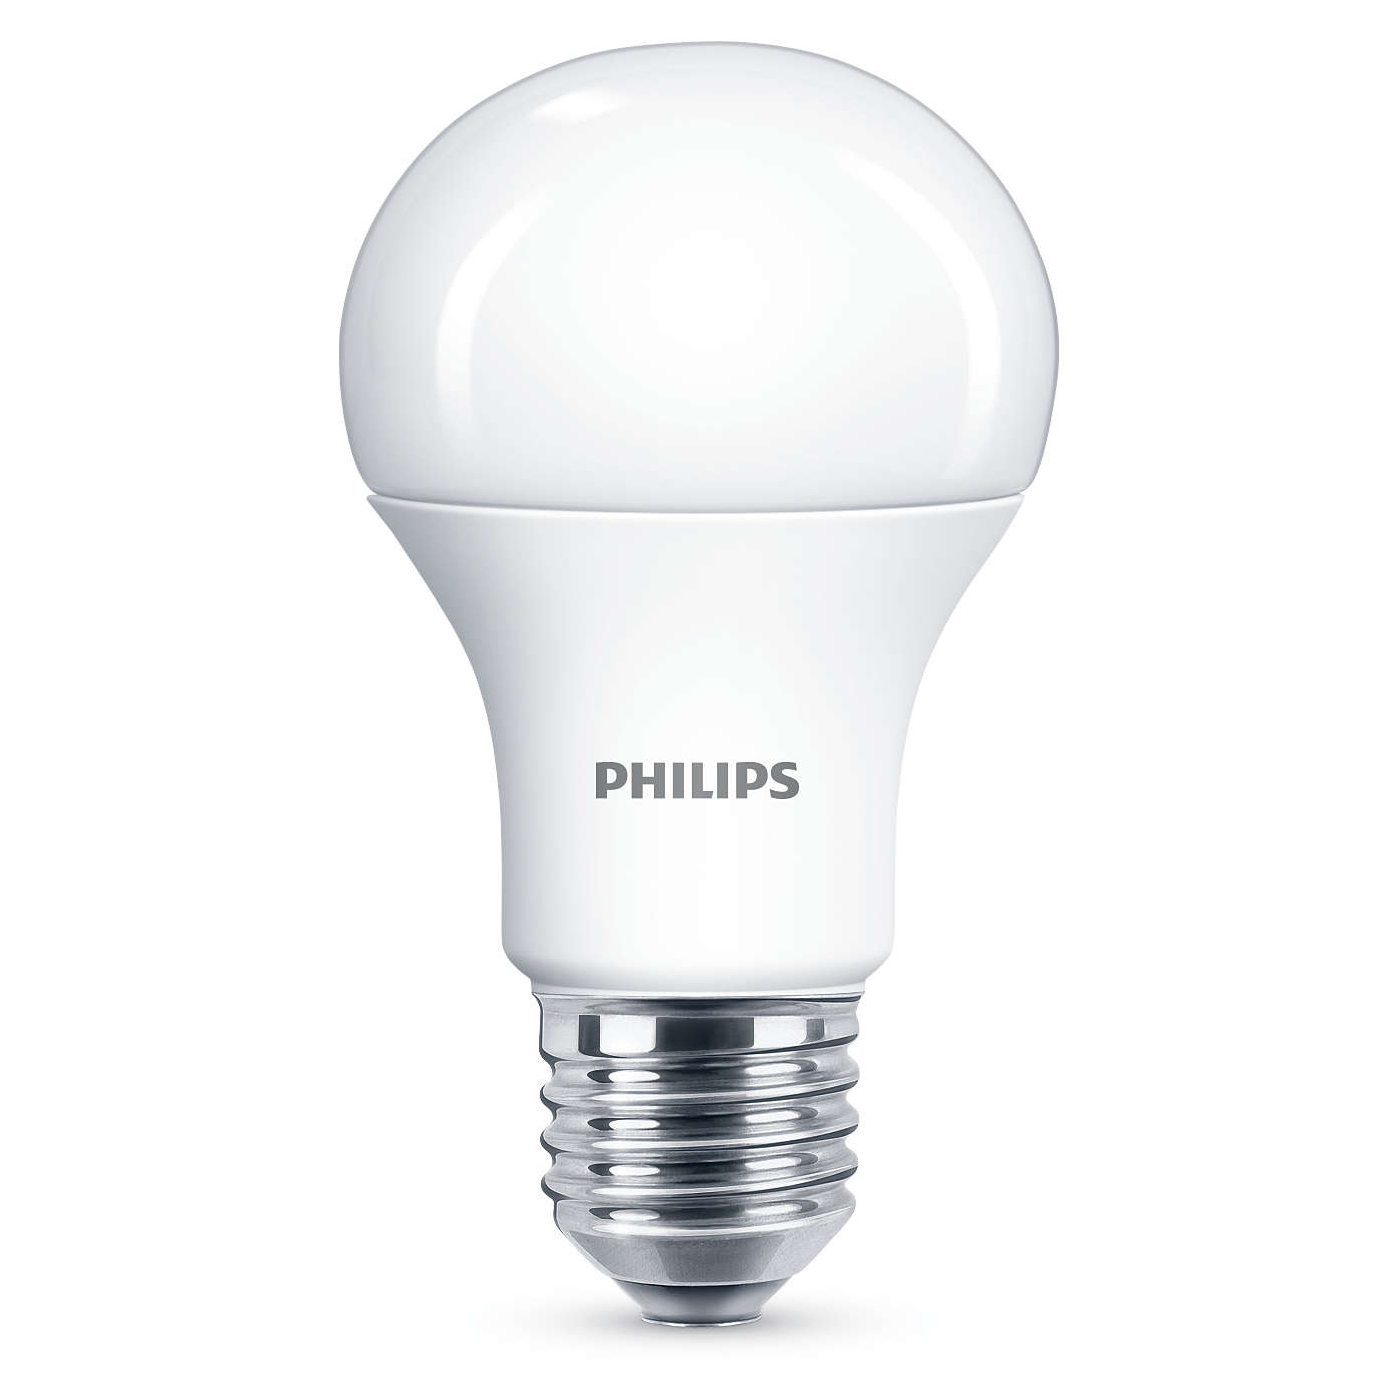 philips 8718696510162 e27 edison screw 11 w led light bulb cool white ebay. Black Bedroom Furniture Sets. Home Design Ideas